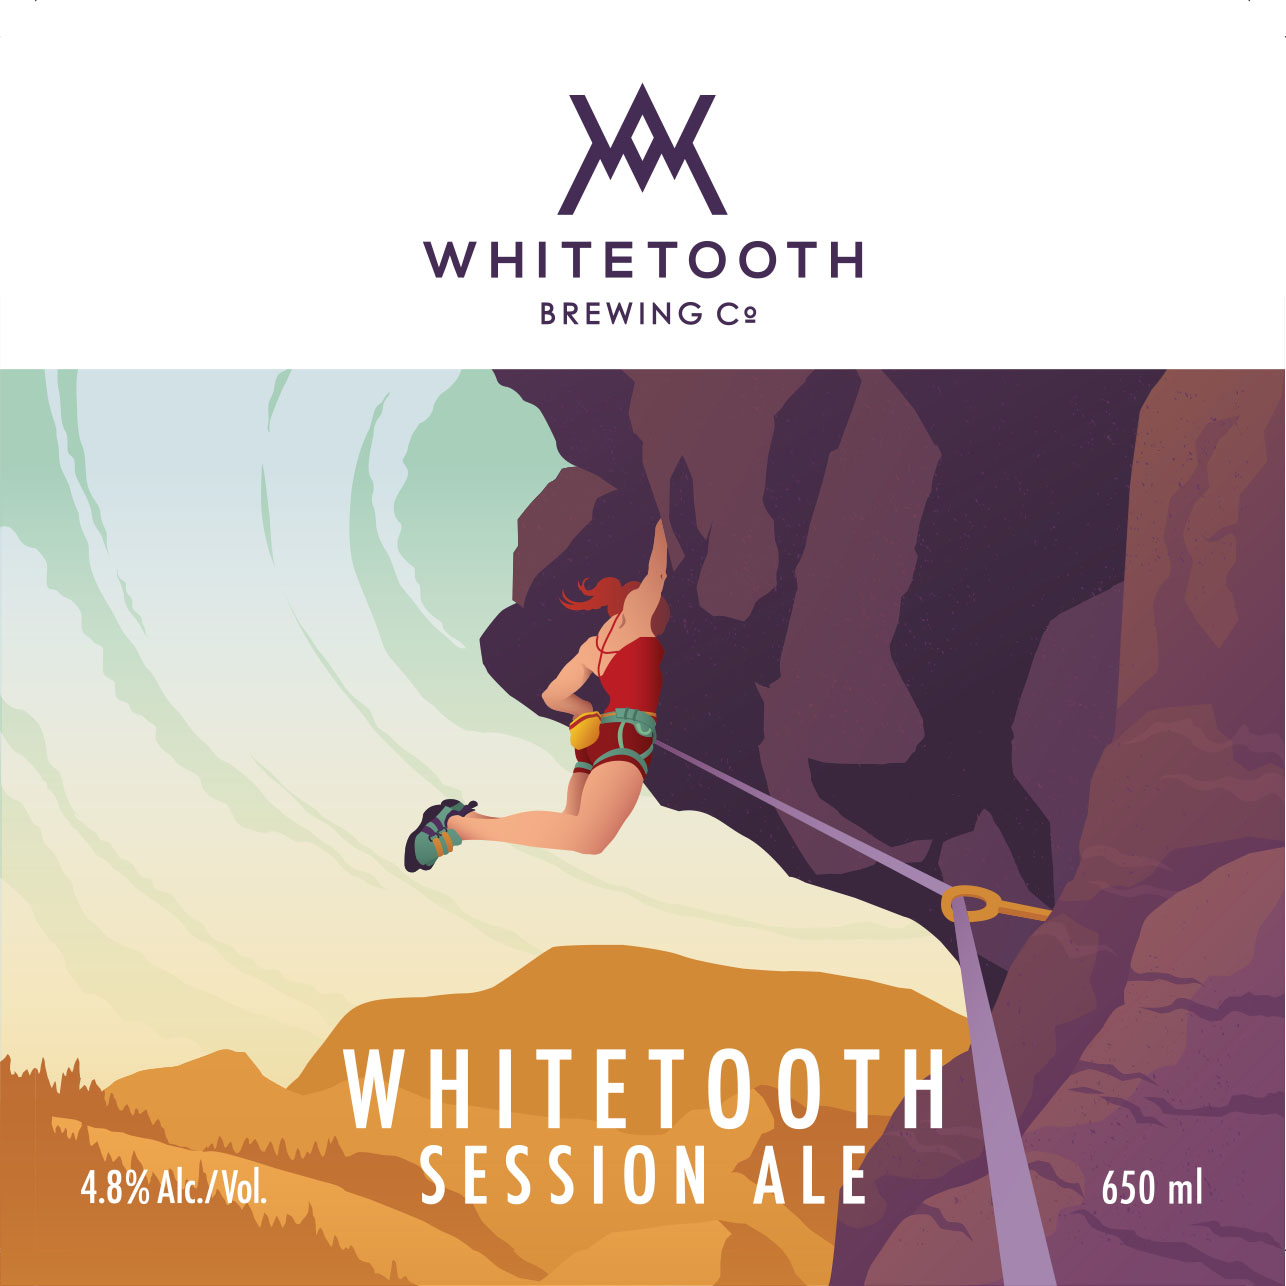 Untitled-1_0002_WhiteTooth-Session-Ale-PREP.jpg